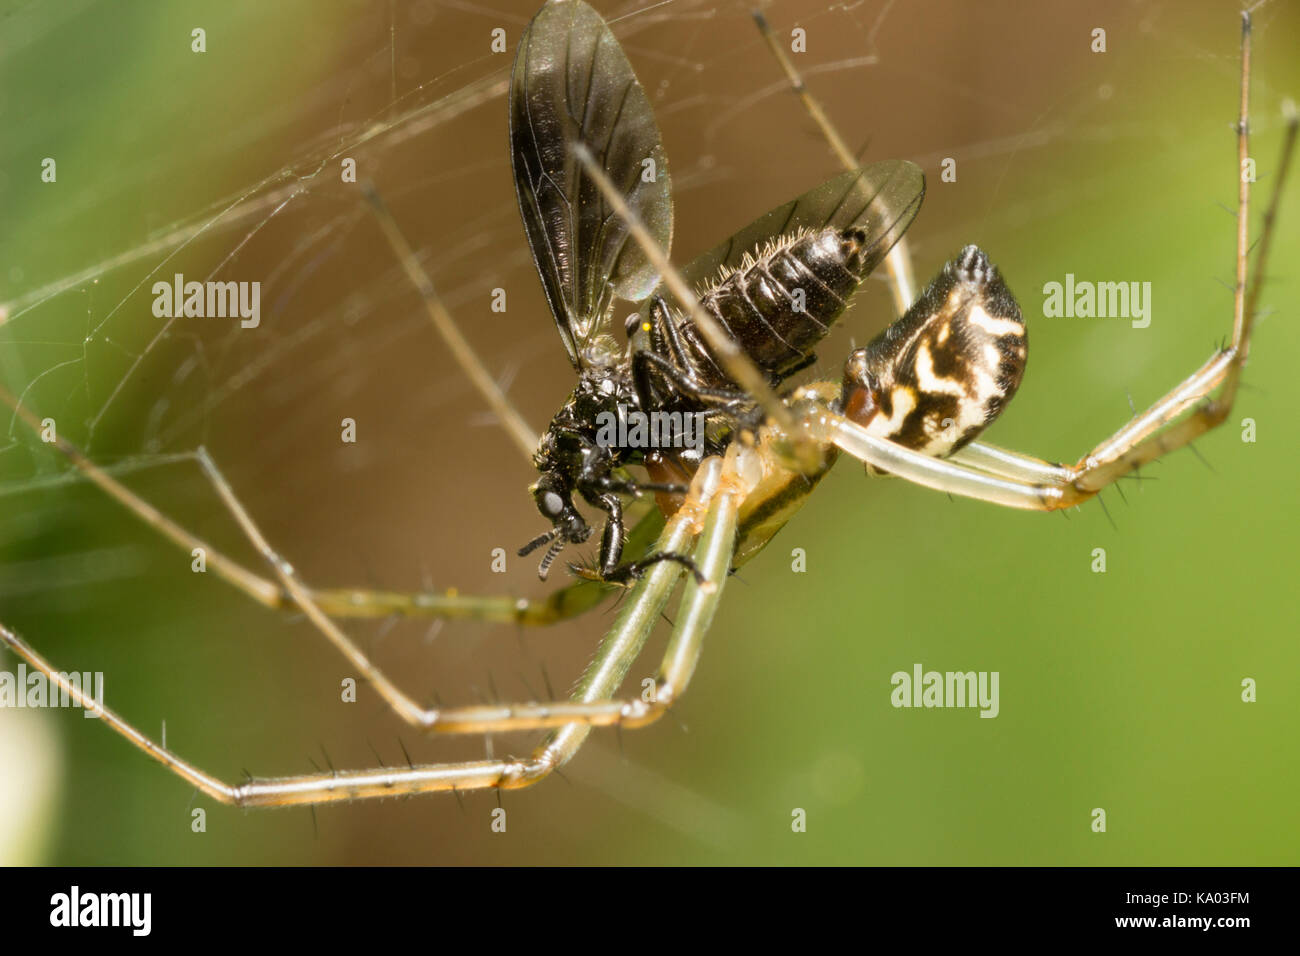 web-spinning-uk-spider-linyphia-triangularis-with-captured-female-KA03FM.jpg